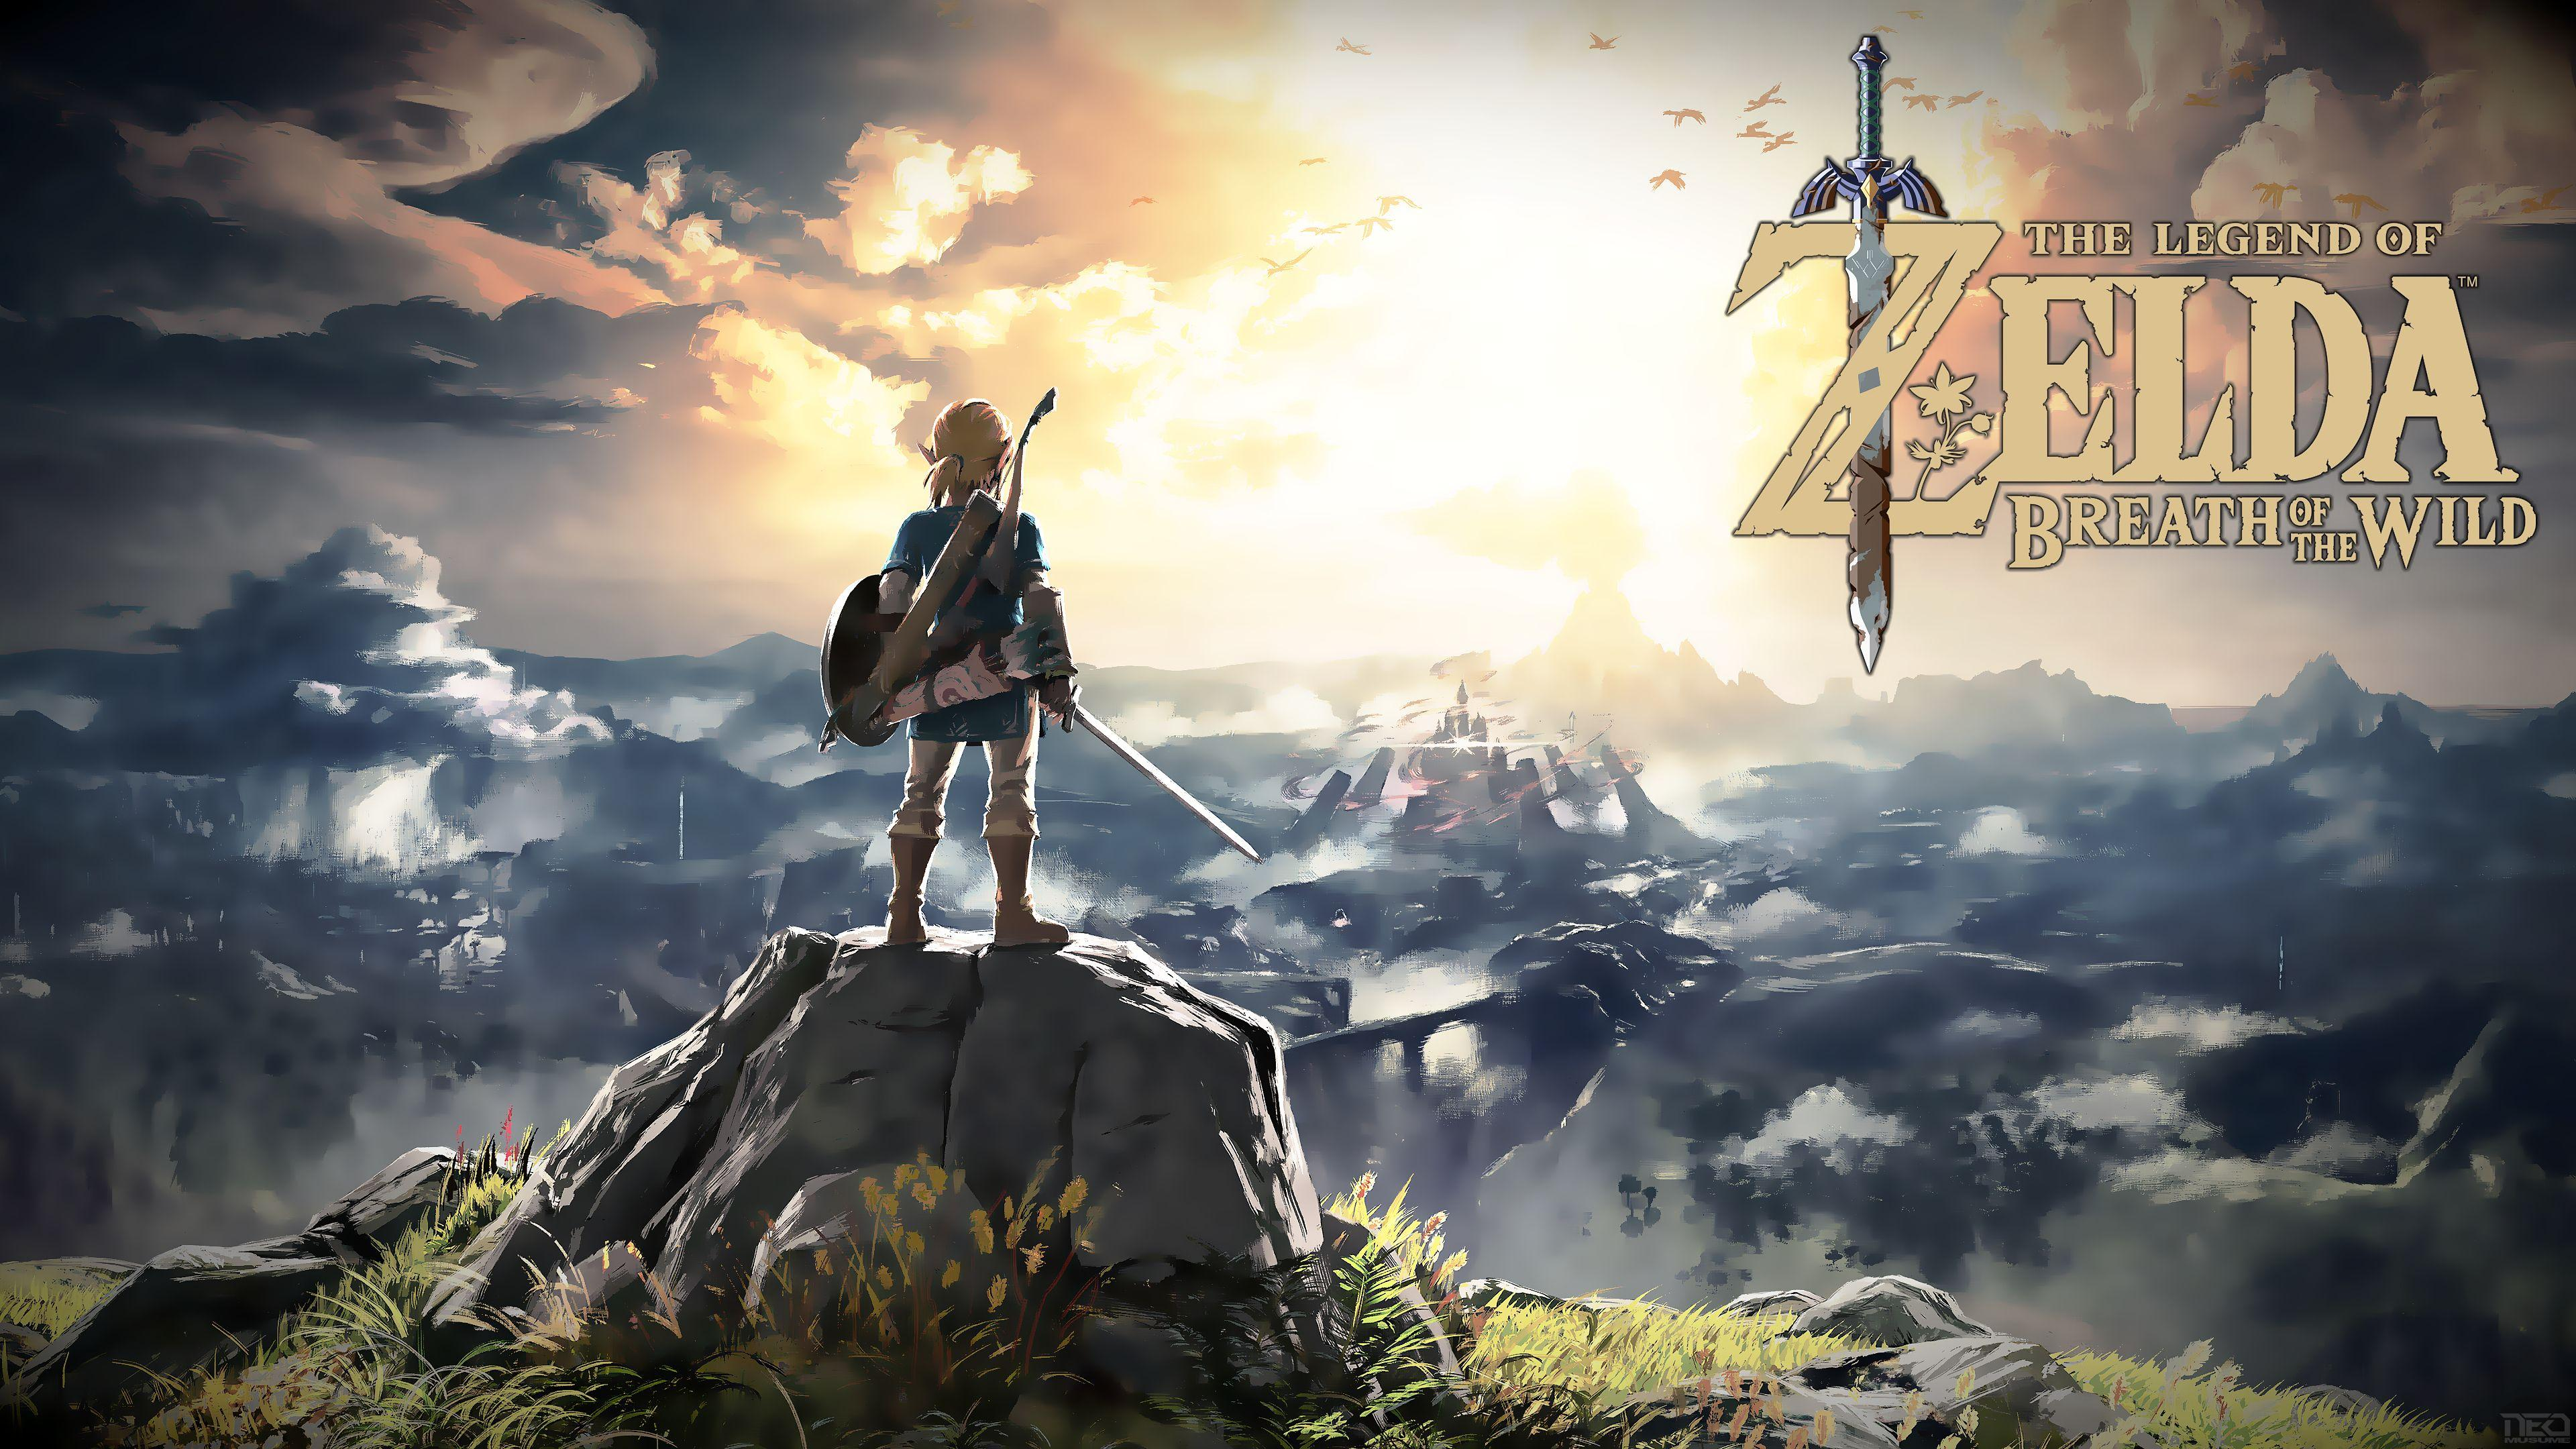 Breath Of The Wild Backgrounds: Legend Of Zelda: Breath Of The Wild Wallpapers